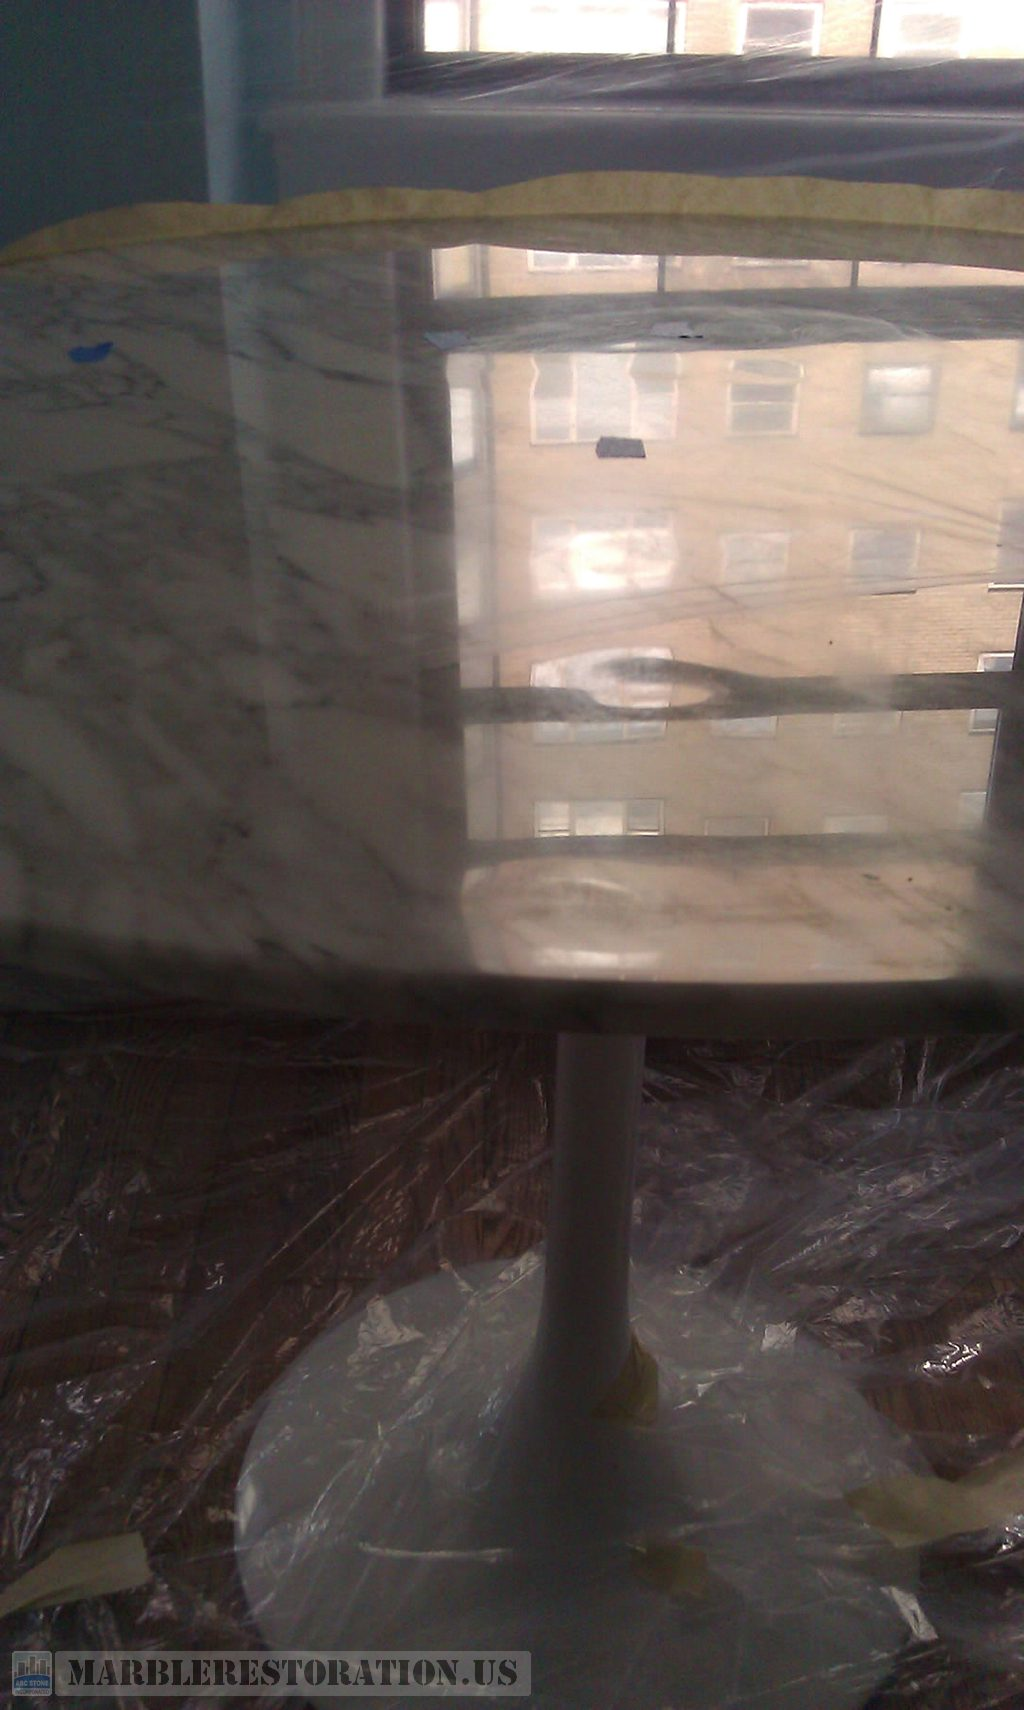 Waves and Gaps on Table Surface